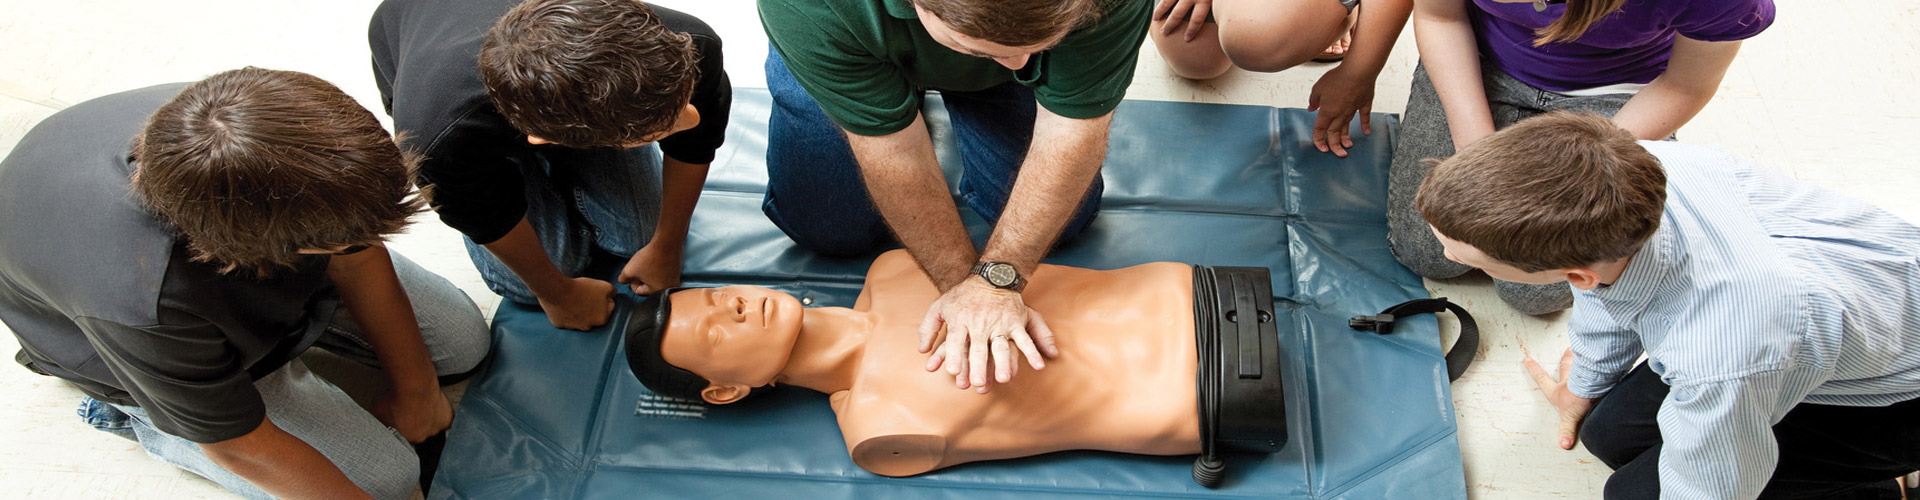 MJD Training | Professional Health & Safety and First Aid Courses